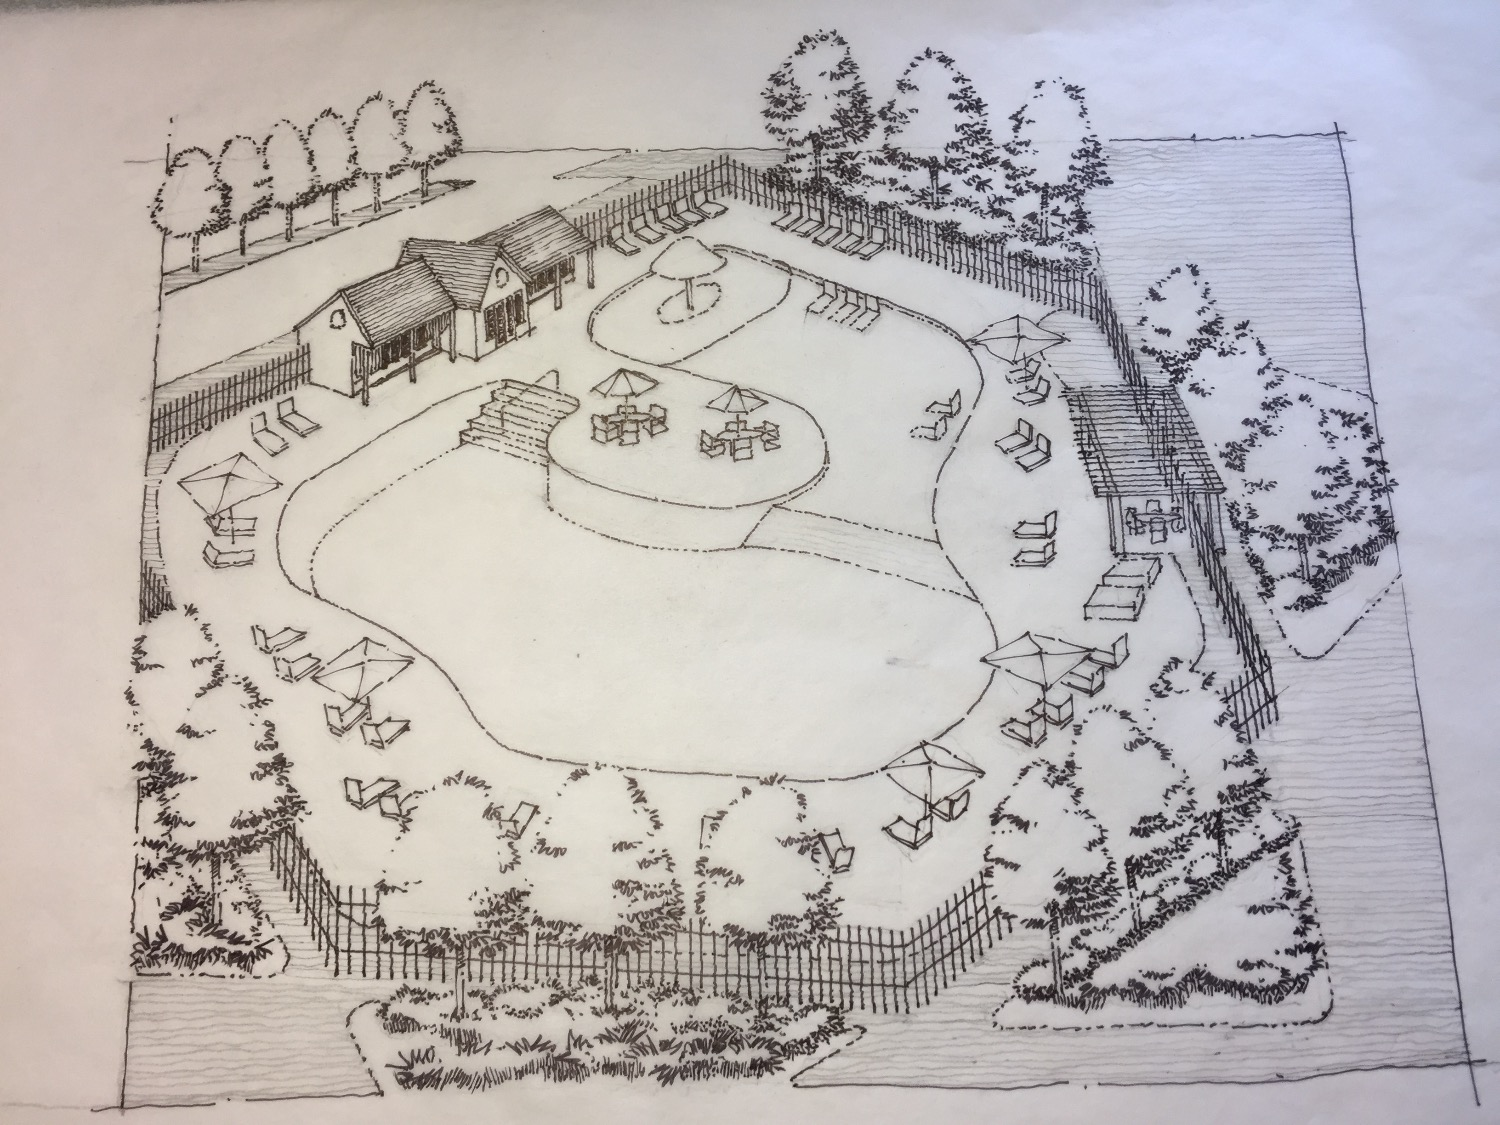 Arbor Lake Pool Sketch